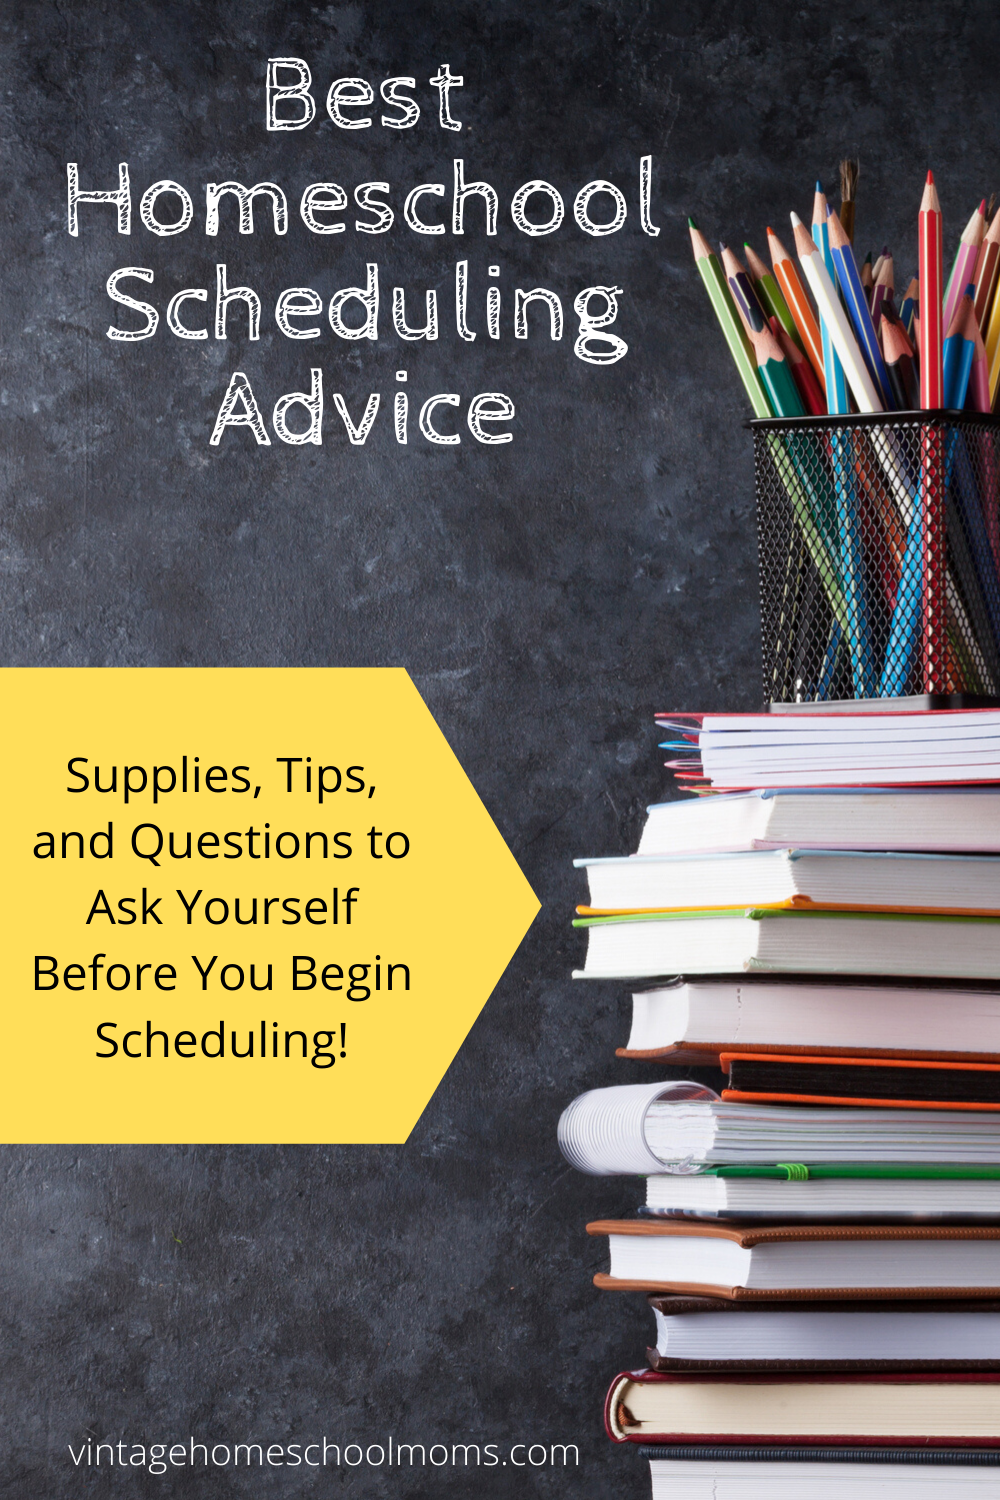 best homeschool scheduling | The Best homeschool scheduling advice I ever received actually came from my daughter, do not duplicate the school at home. I looked at the way I scheduled my homeschool year. #homeschool #homeschooling #podcast #homeschoolschedule